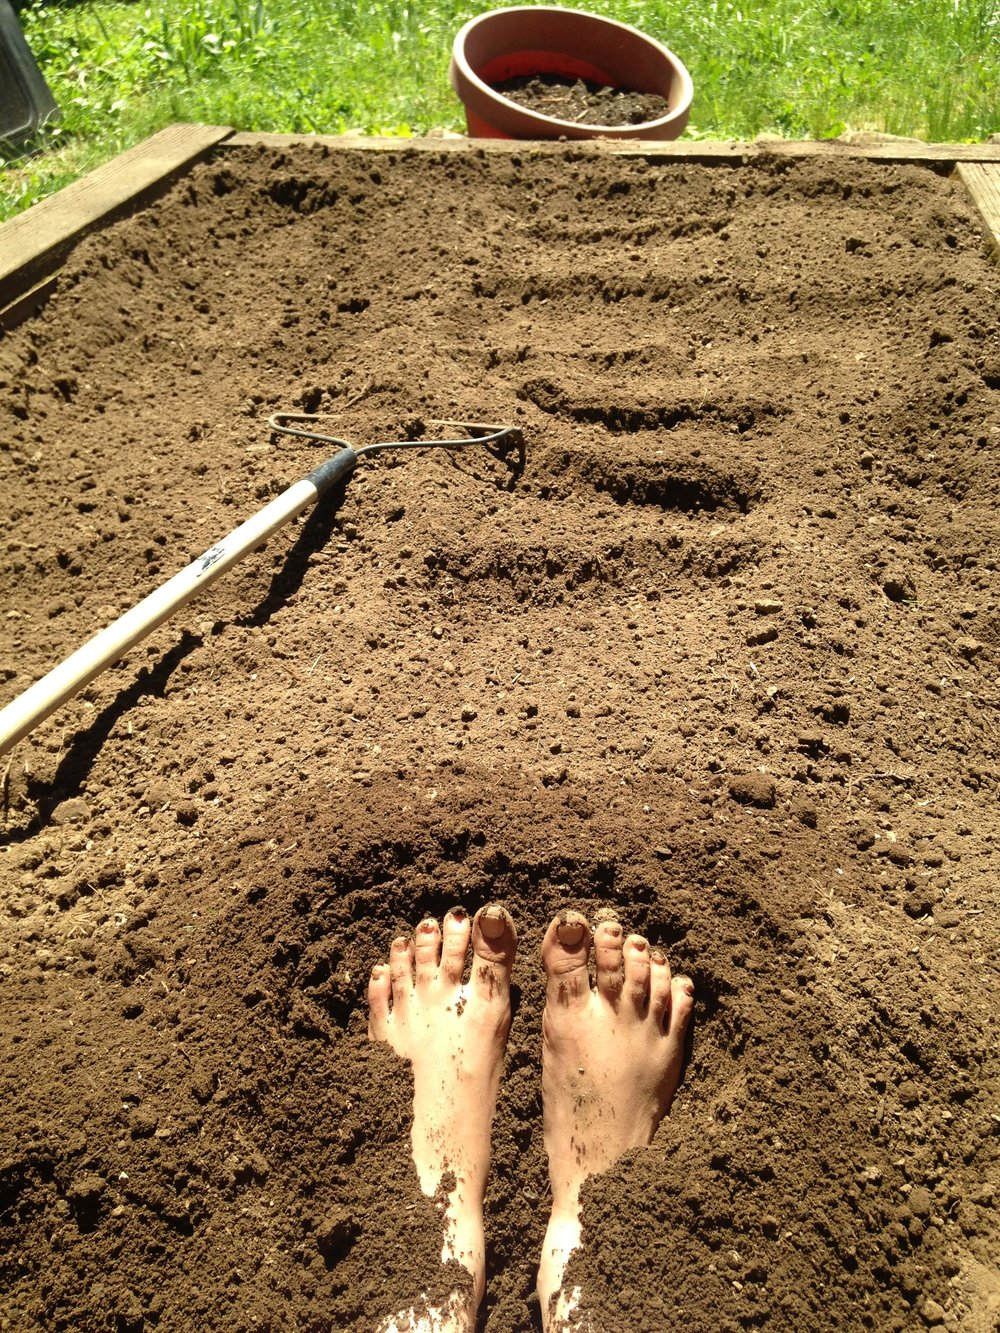 - Raking a bed of dirt I'm reminded of my childhood  Sitting in the bed of my uncle's truck Seven years old, digging in my toes Breaking up clumps of cool mud Simplicity was funSummers in Ohio Soaking in sun